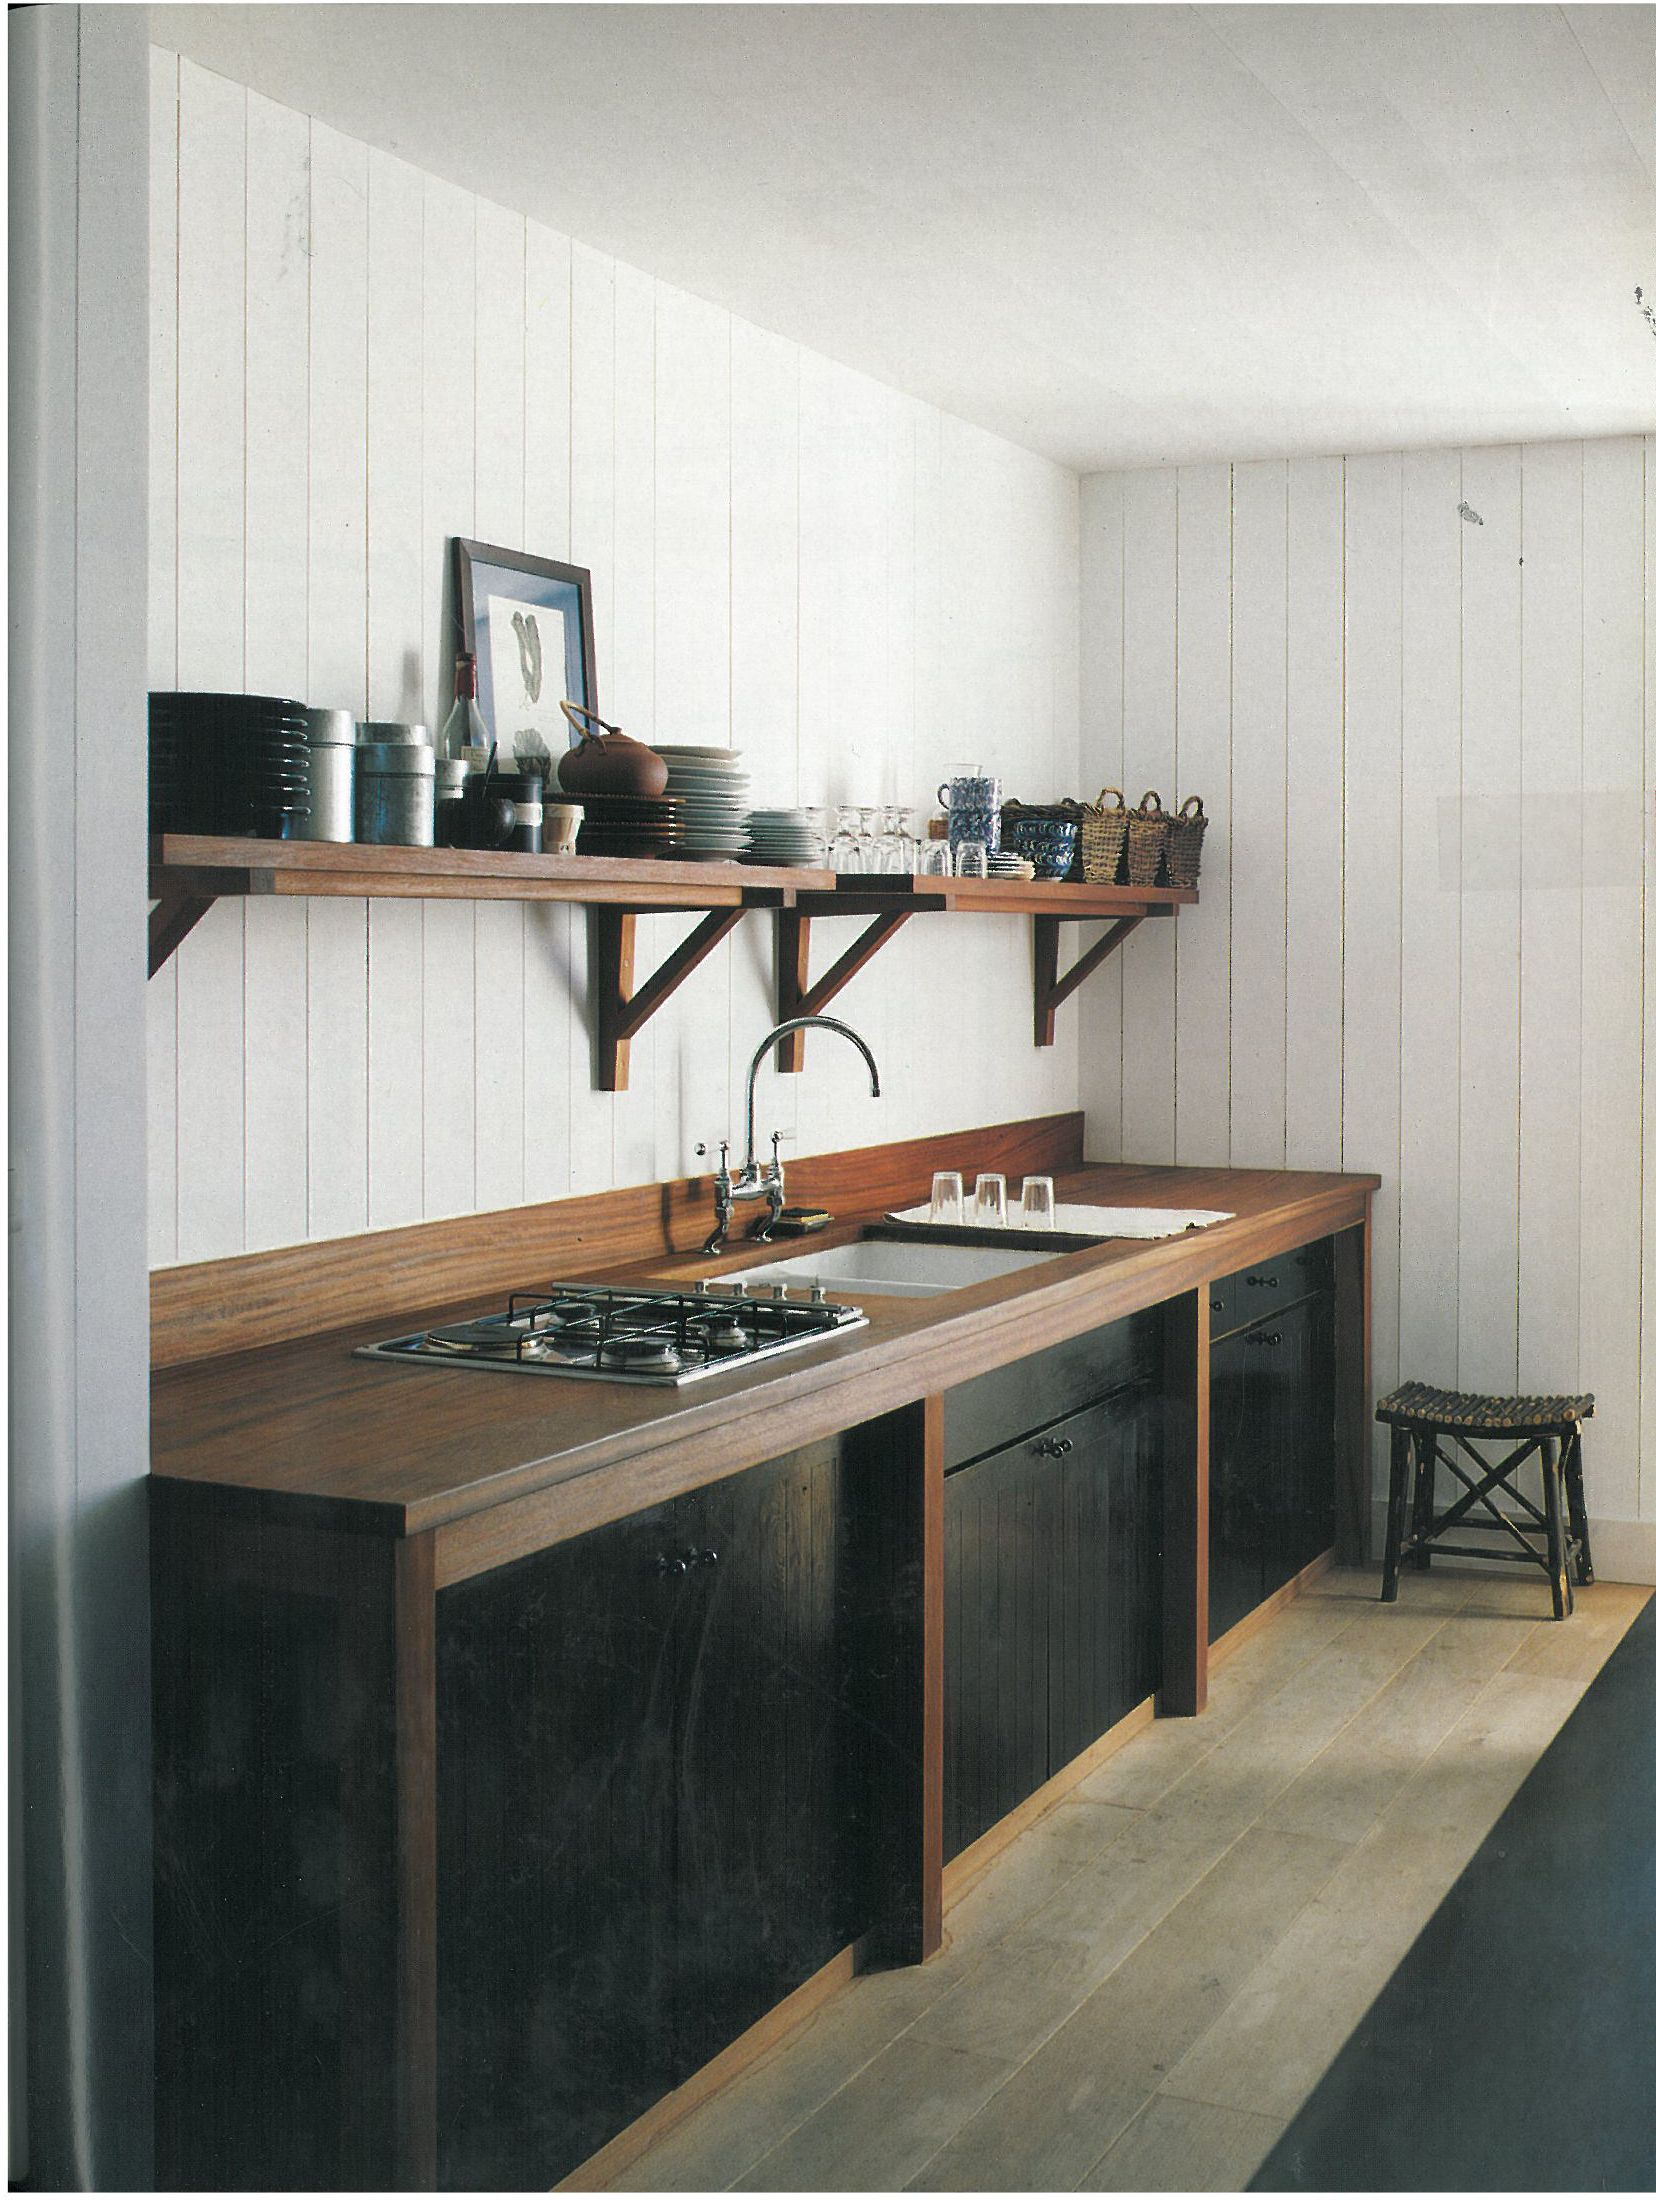 basic / Christian Liaigre. would LOVE a kitchen like this someday - walks out to the garden / conservatory / greenhouse, right? ;-) all fresh simple and alive..